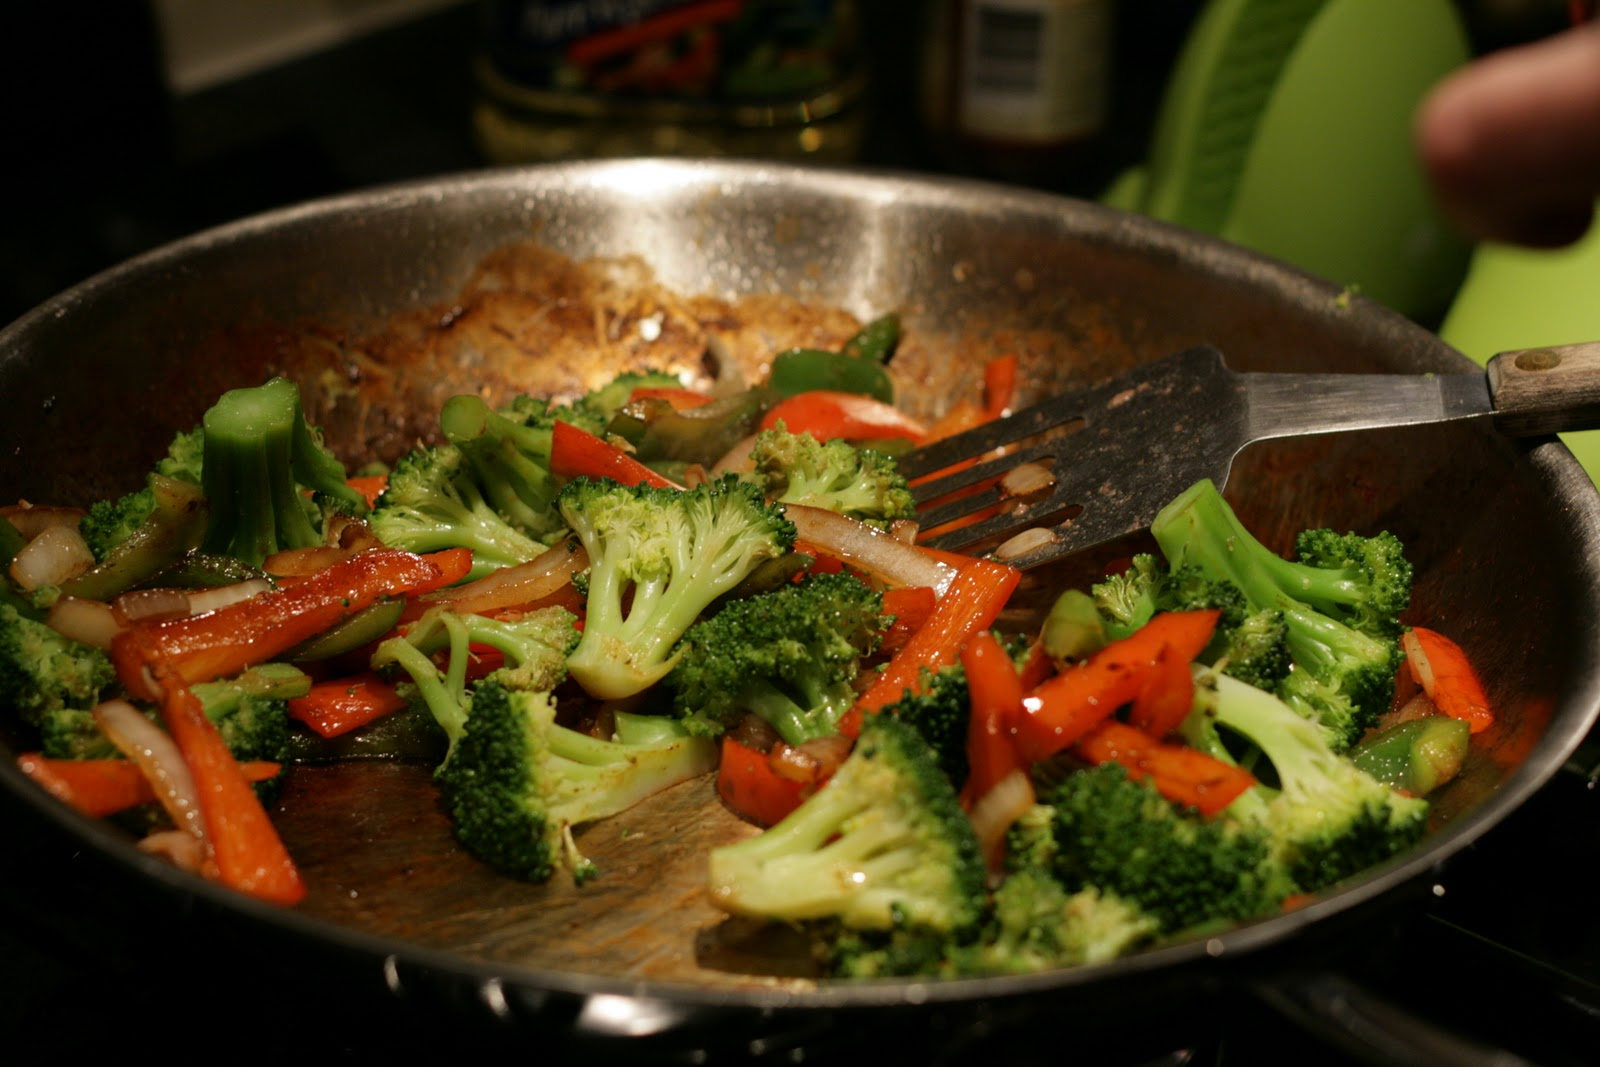 stirfry Need stir fry recipes get stir fry recipes for your next evening meal from taste of home taste of home has stir fry recipes including chicken stir fry recipes, beef stir fry recipes, and more stir fry recipes.